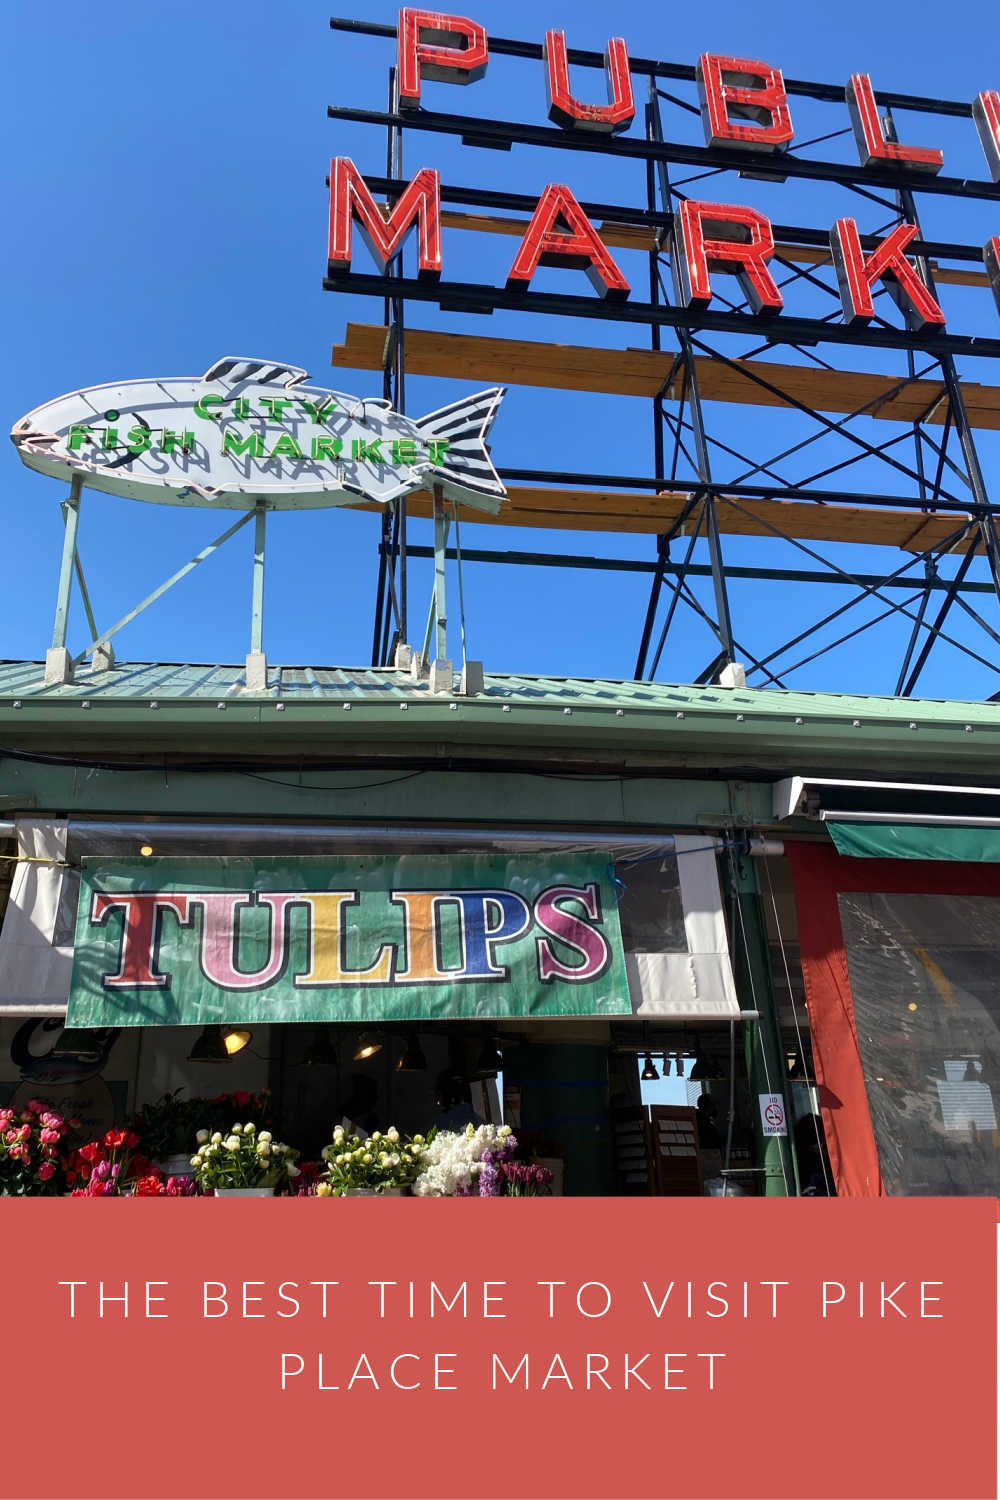 THE BEST TIME TO VISIT PIKE PLACE